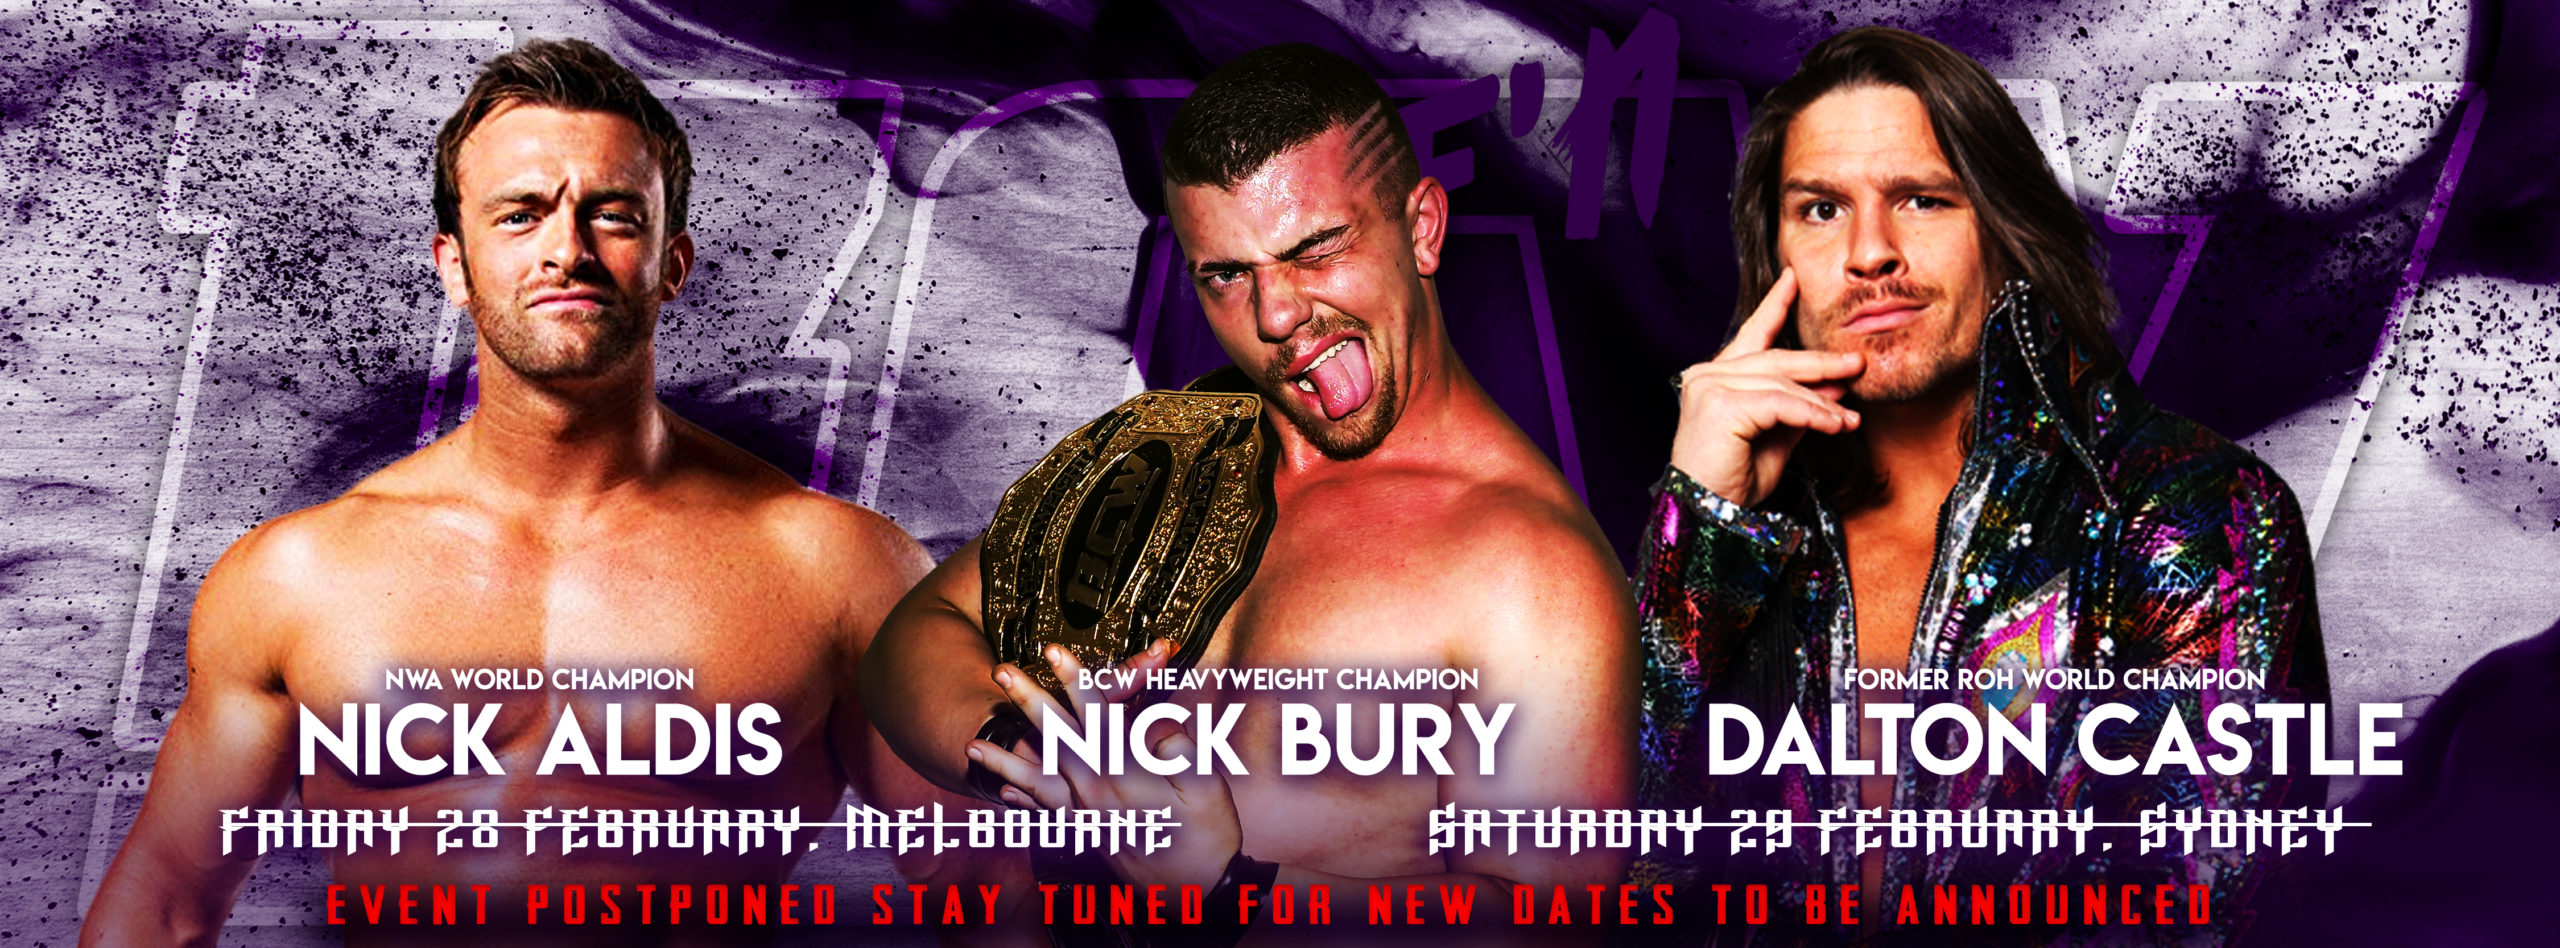 BCW40 - Friday 24 April, Melbourne | BCW41 - Saturday 25 April, Sydney